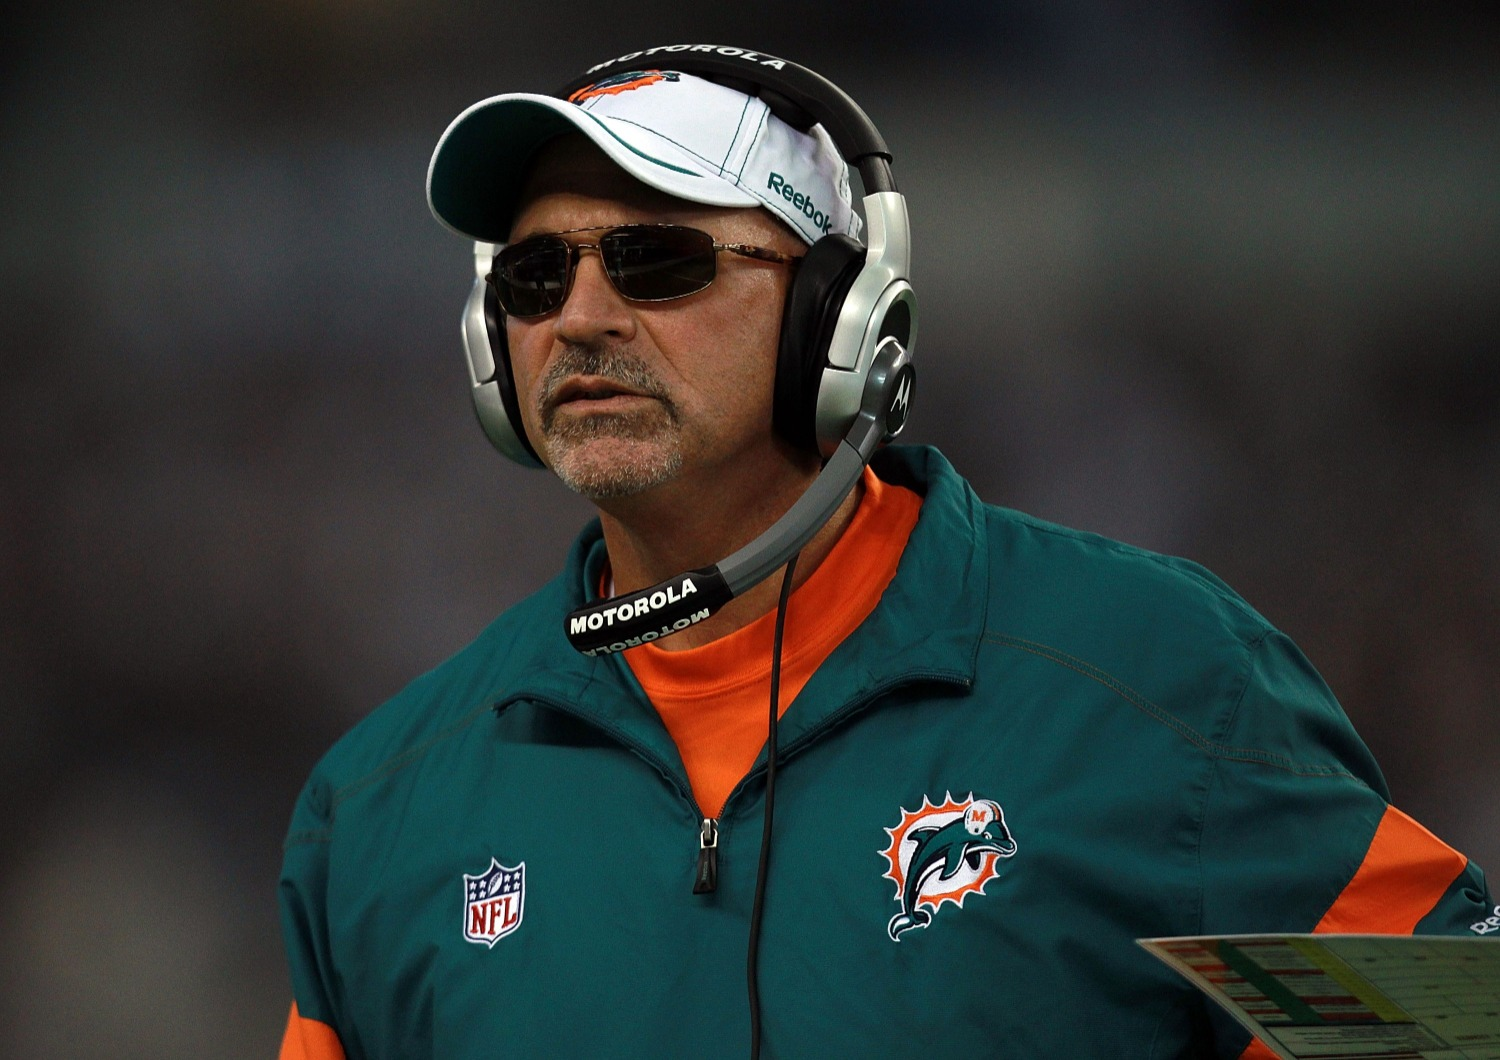 Former Miami Dolphins Head Coach Tony Sparano Tragically Died While Getting Ready for Church